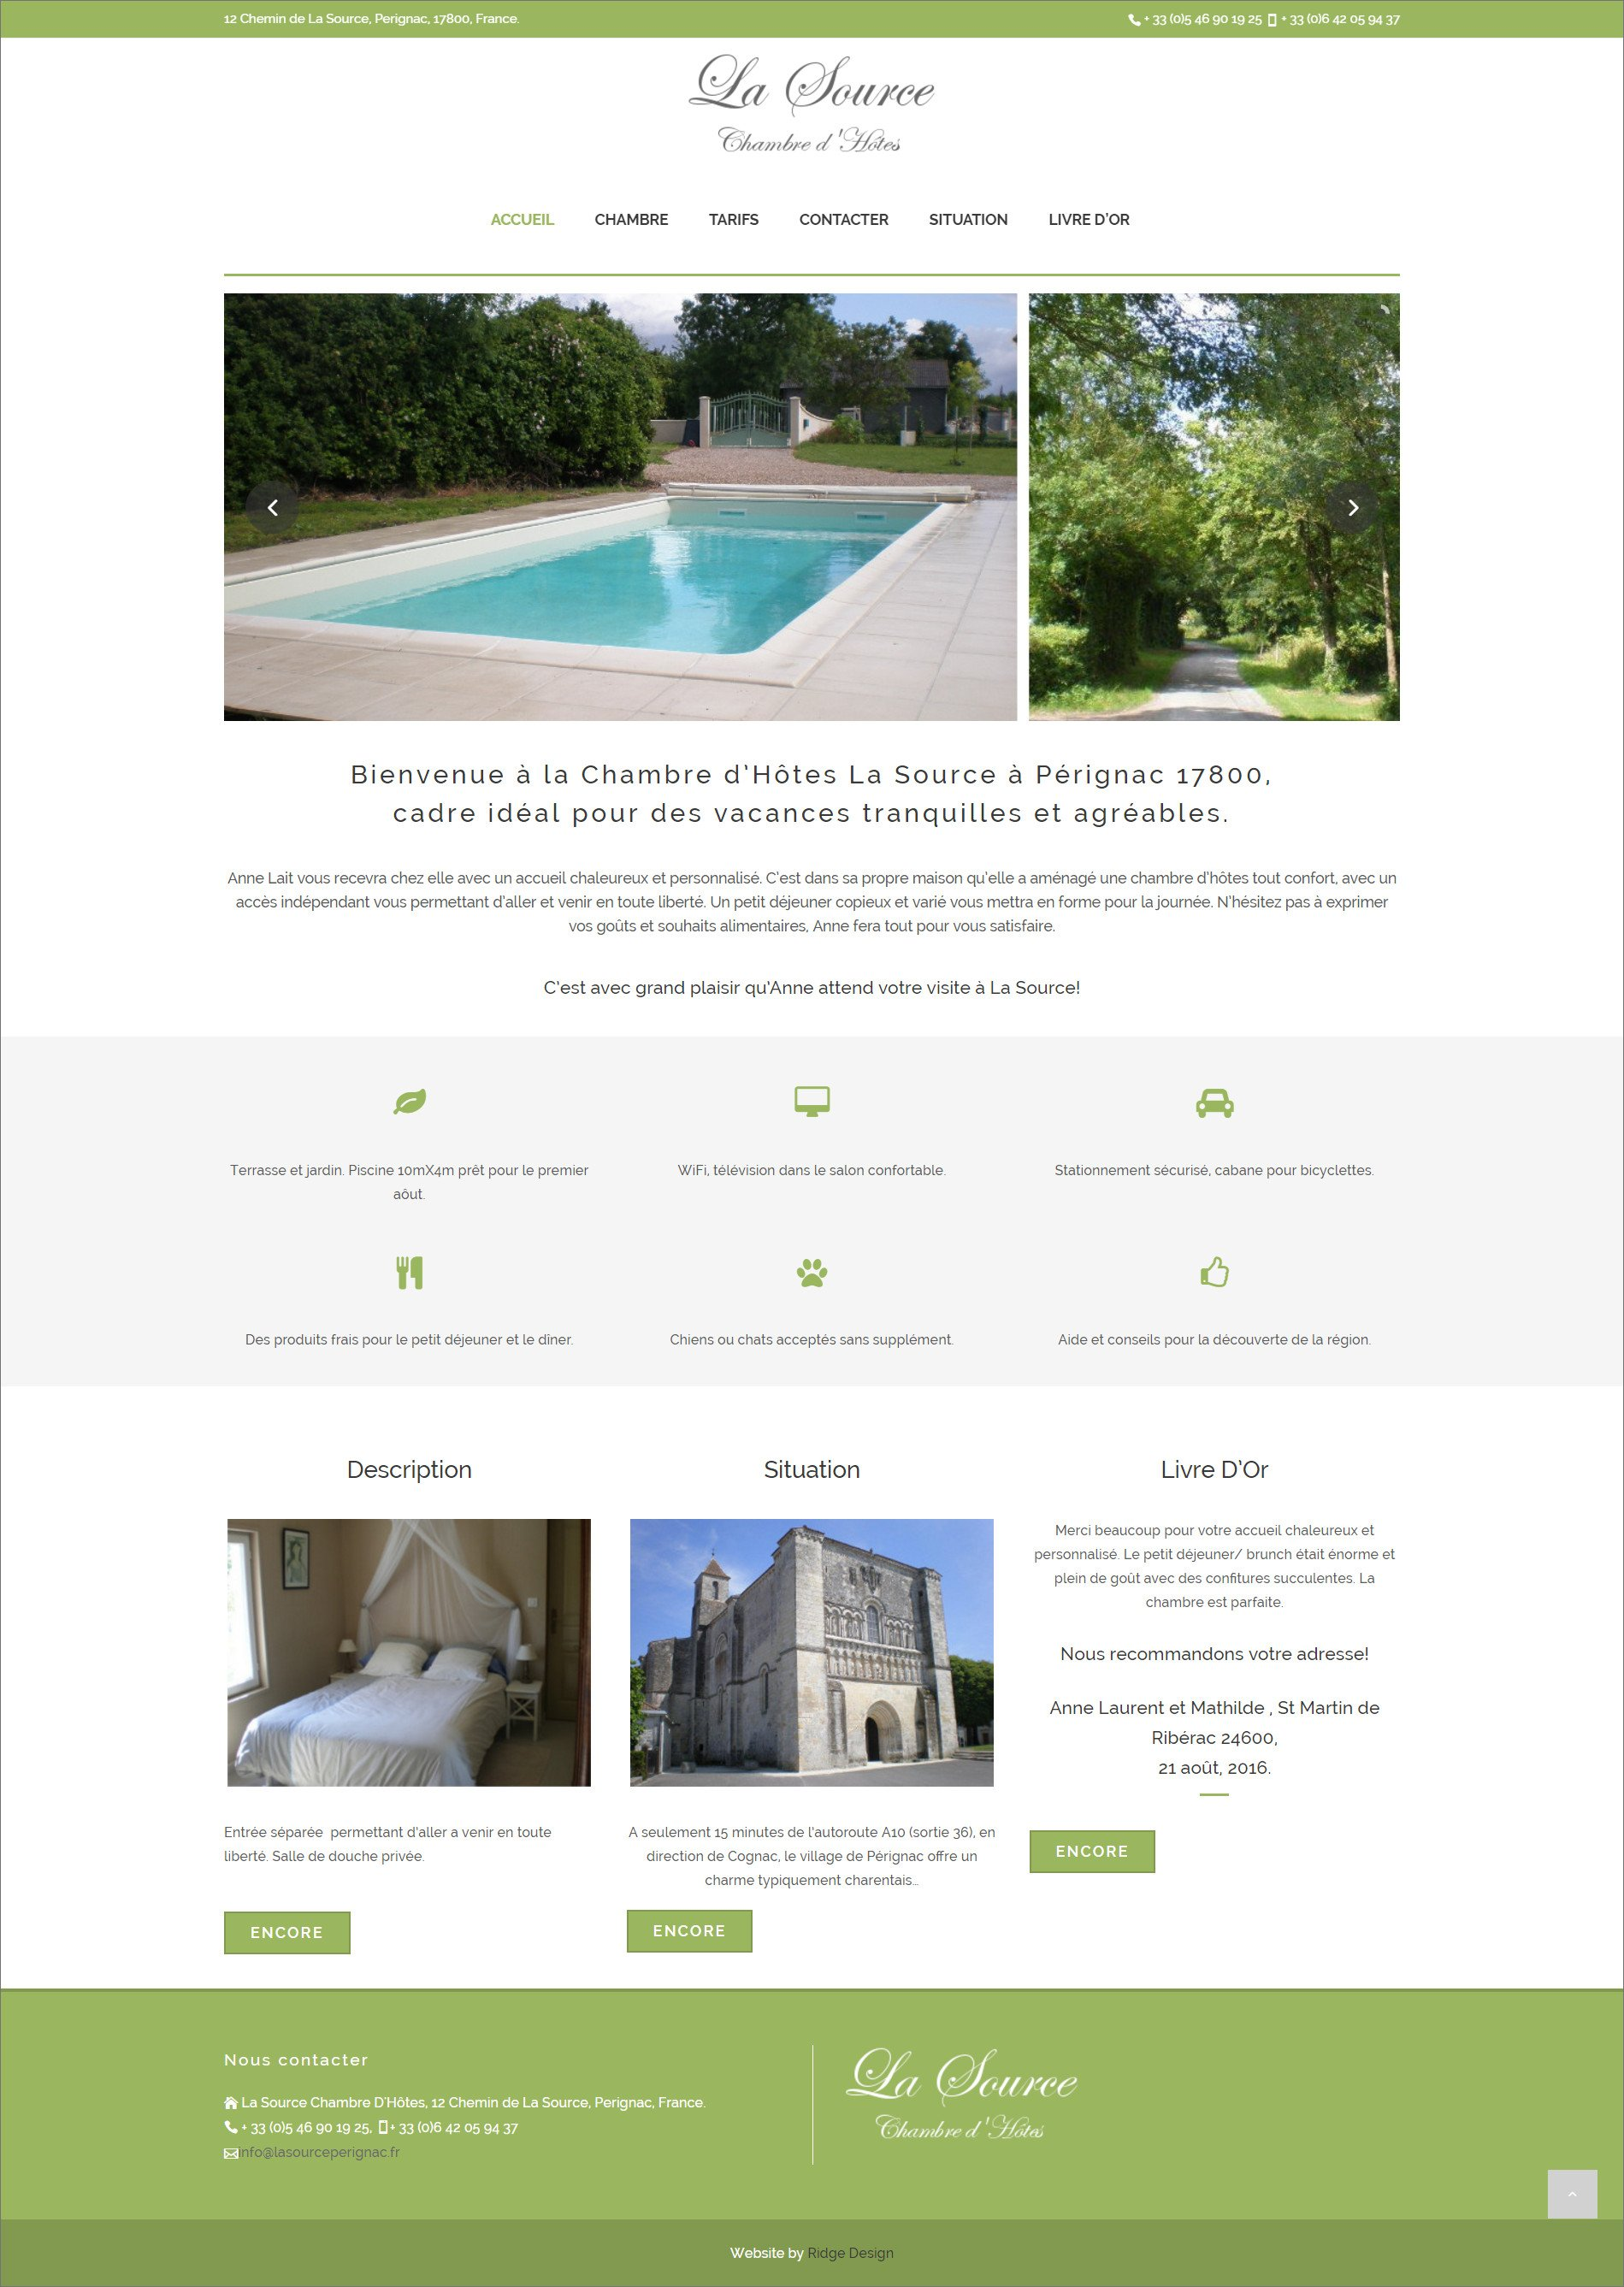 Ridge-Design-Website-Design-For La Source-accueil